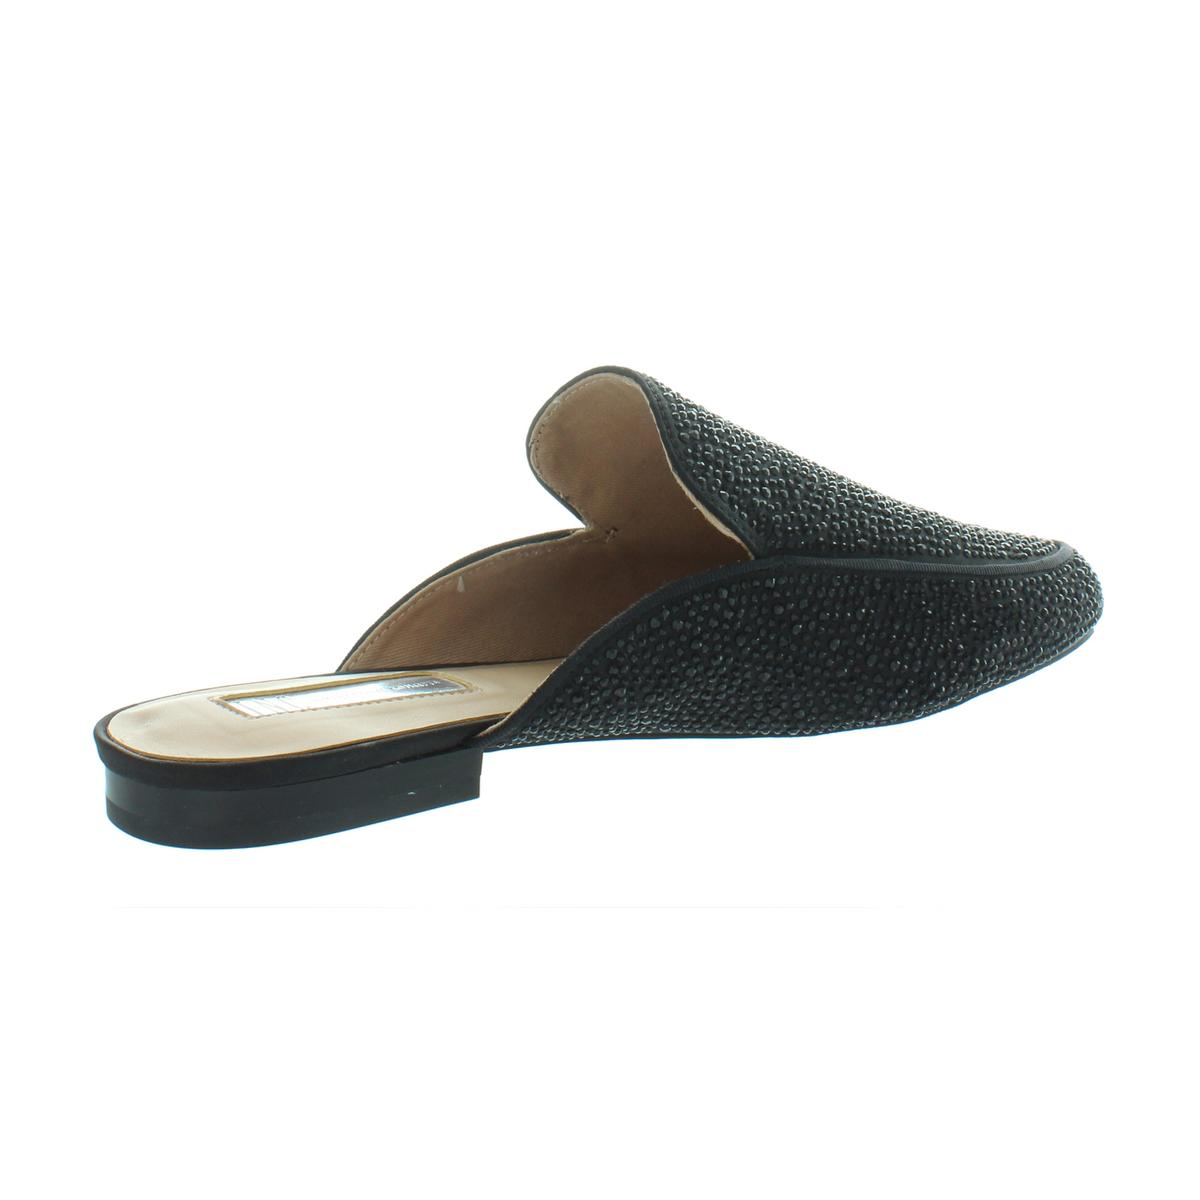 INC-Womens-Gannie12-Embellished-Loafer-Round-Toe-Mules-Flats-BHFO-9730 thumbnail 4